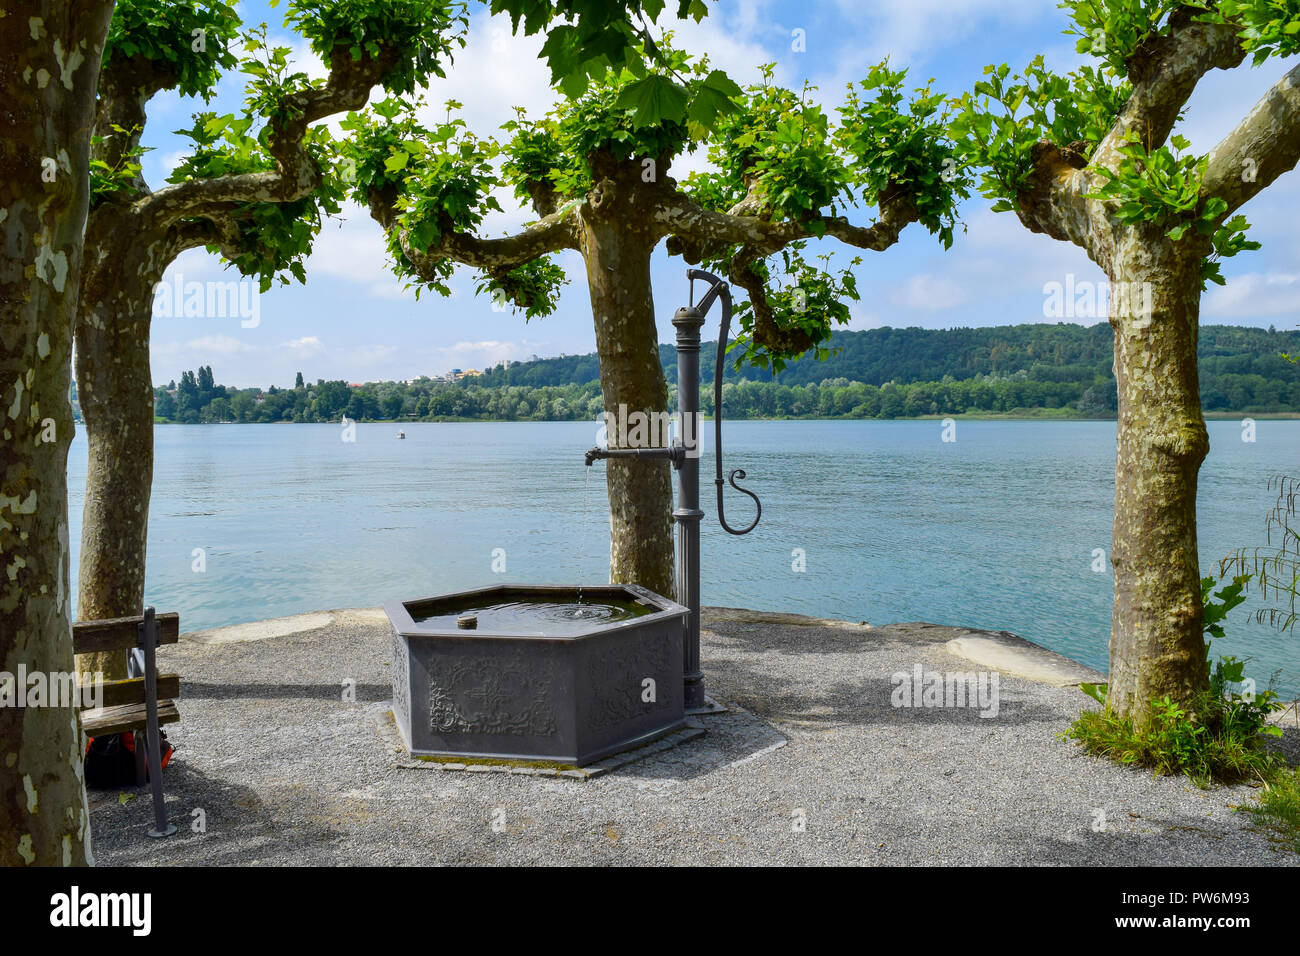 mainau island view through trees over lake constance, Bodensee, fountain in front of lake blue sky and island - Stock Image